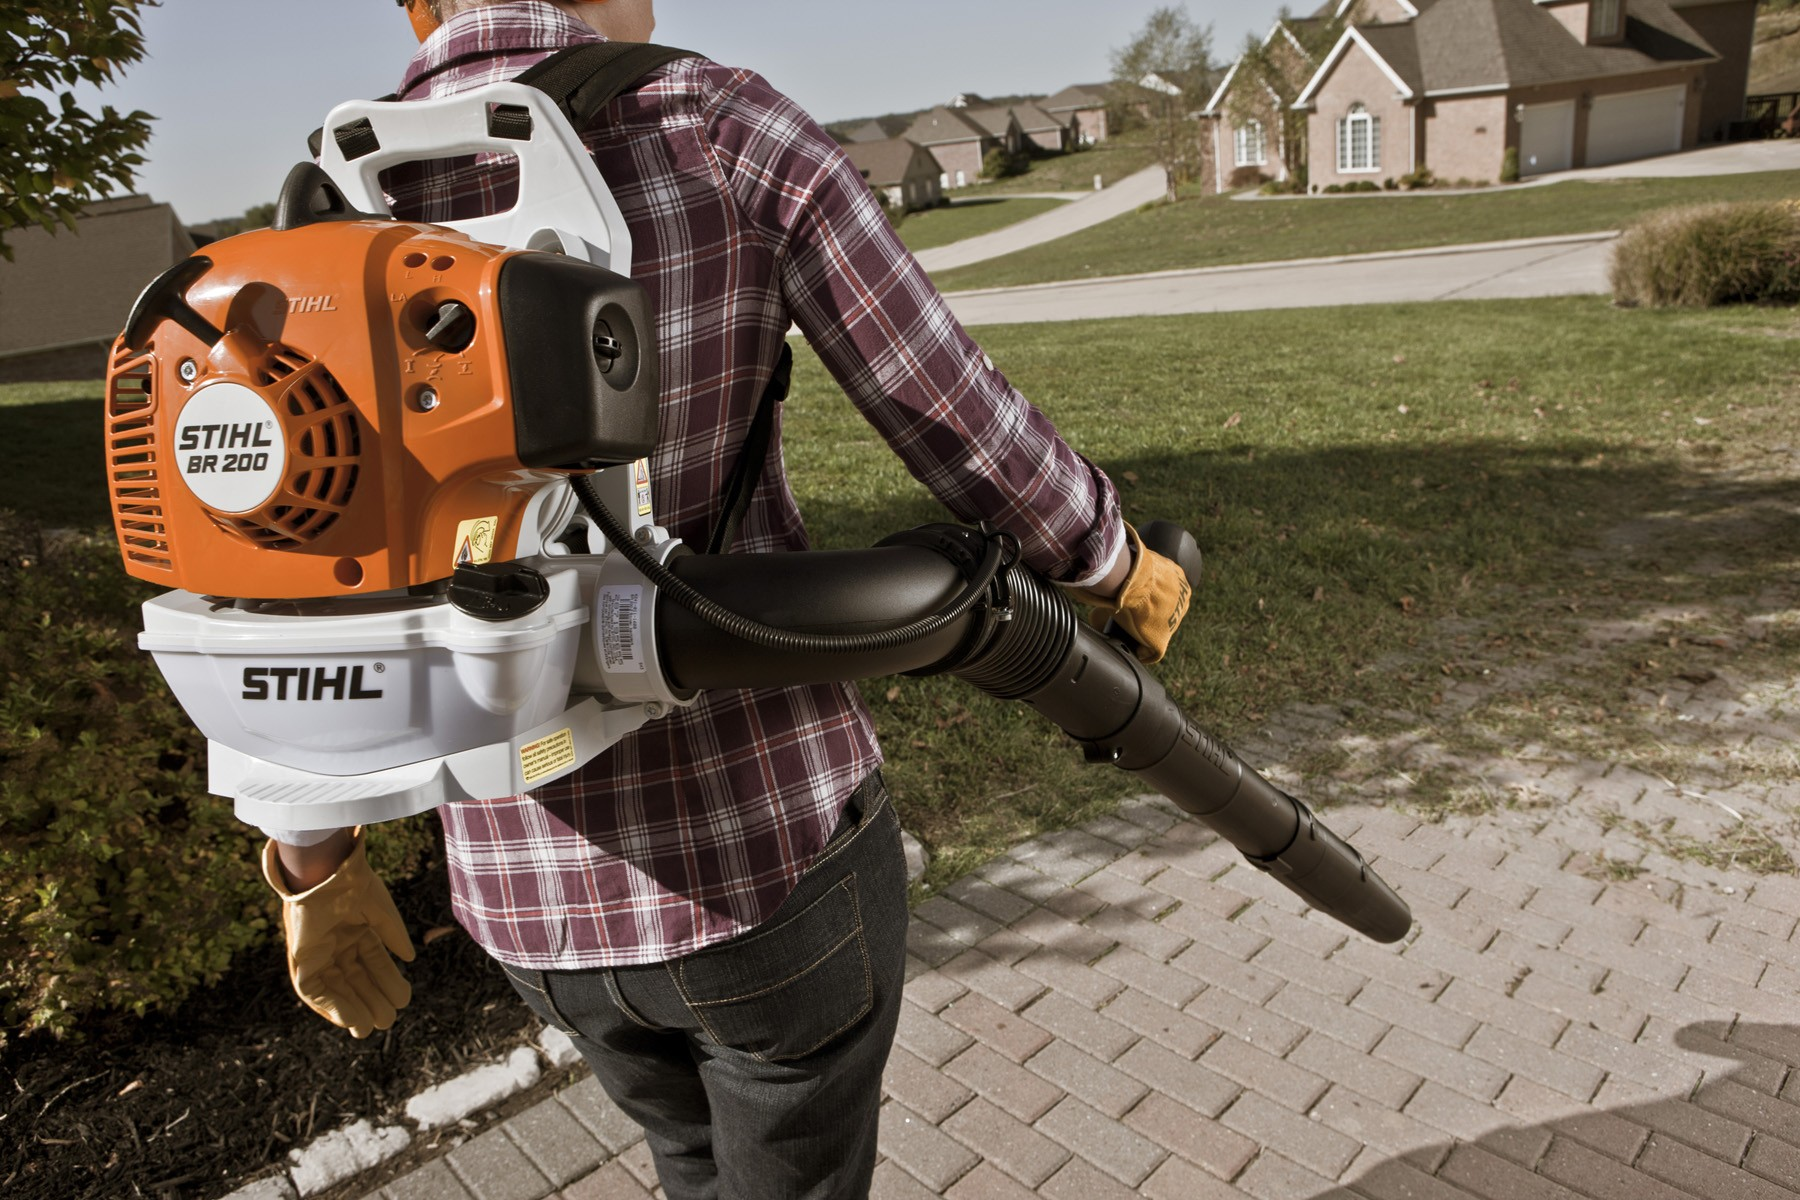 A backpack blower is being used for leaf removal.